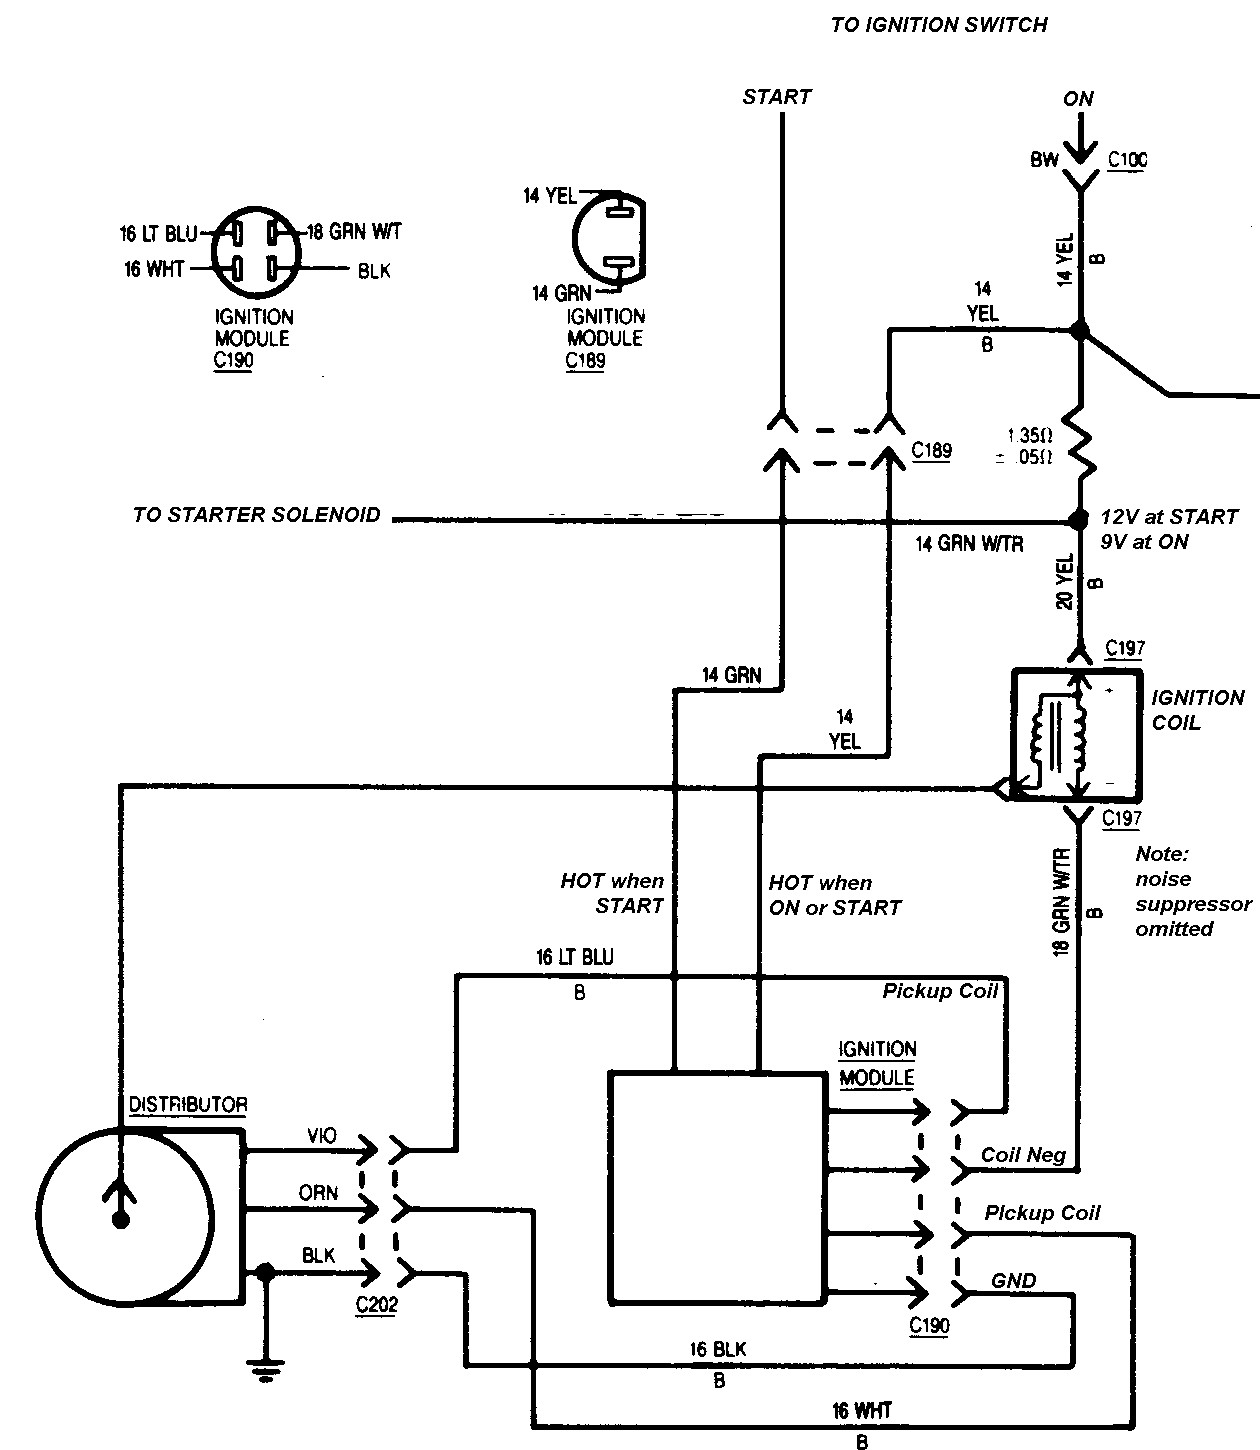 gm ignition wire harness wiring diagram rh blaknwyt co gm ignition module wiring diagram gm hei ignition wiring diagram